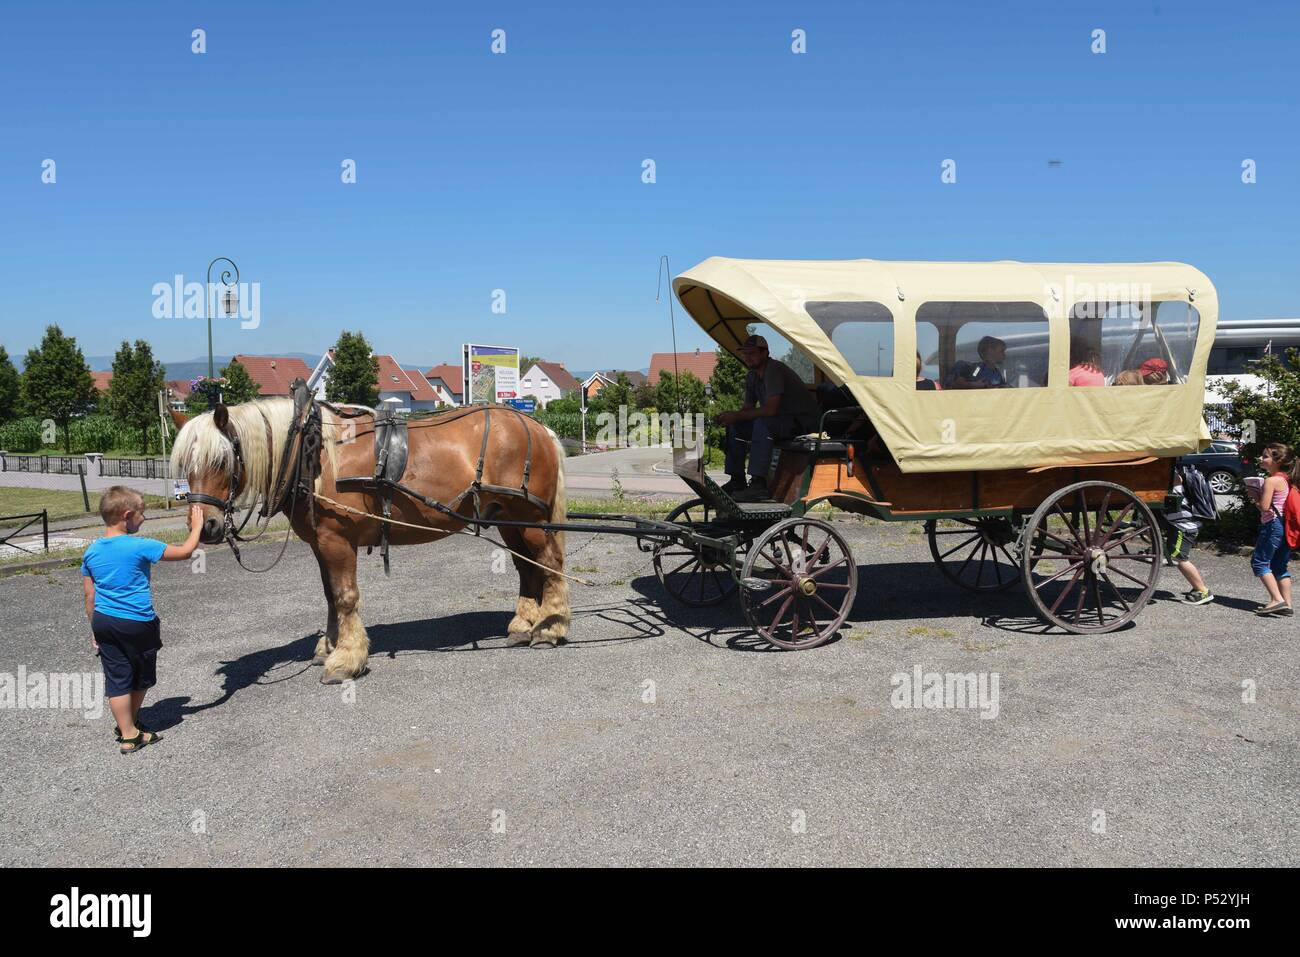 June 30, 2015 - Ungersheim, France: Schoolchildren take a horse-drawn carriage in Ungersheim. This small Alsacian village (population: 2000) is known as the greenest village in France because of its various environment-friendly initiatives: construction of a solar power plant, use of municipal agricultural land to promote local organic food, horse transport for school children, pesticide-free green spaces, eco-lodging, wood heating, etc. Ungersheim is part of the transition network, an international association promoting measures towards climate change adaptation, especially energetic and alim - Stock Image